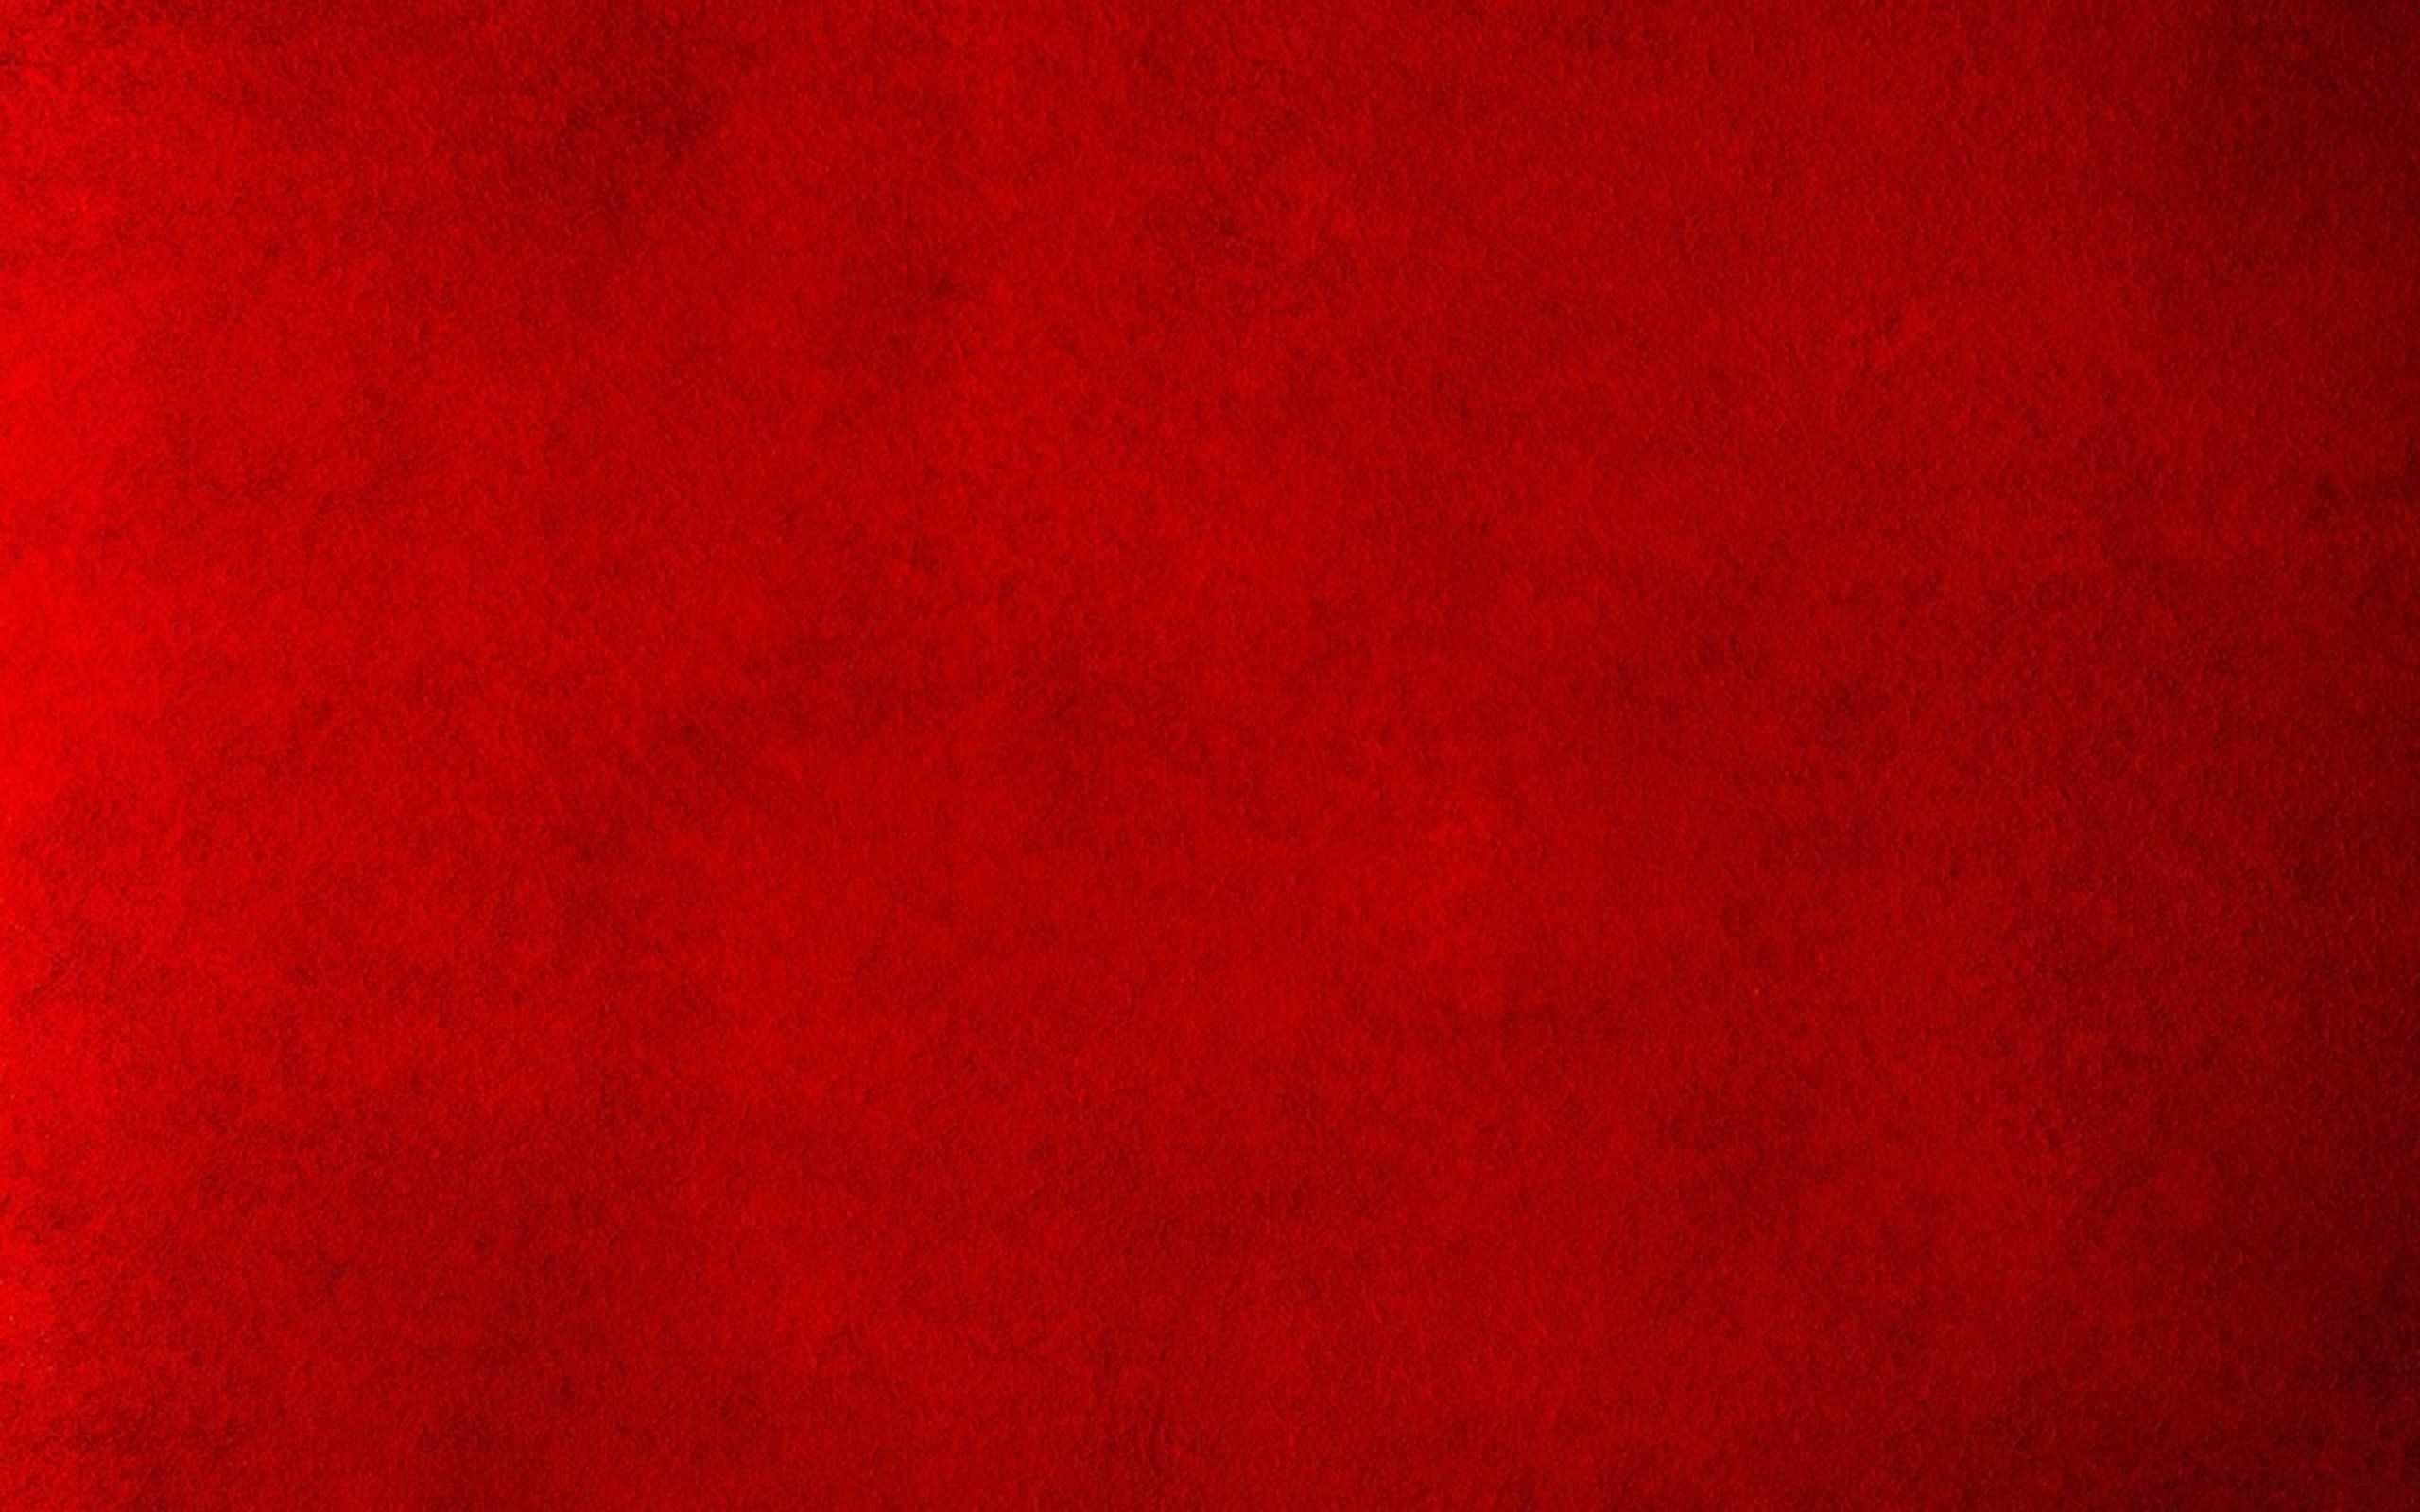 Blood Reddish Solid Backgrounds